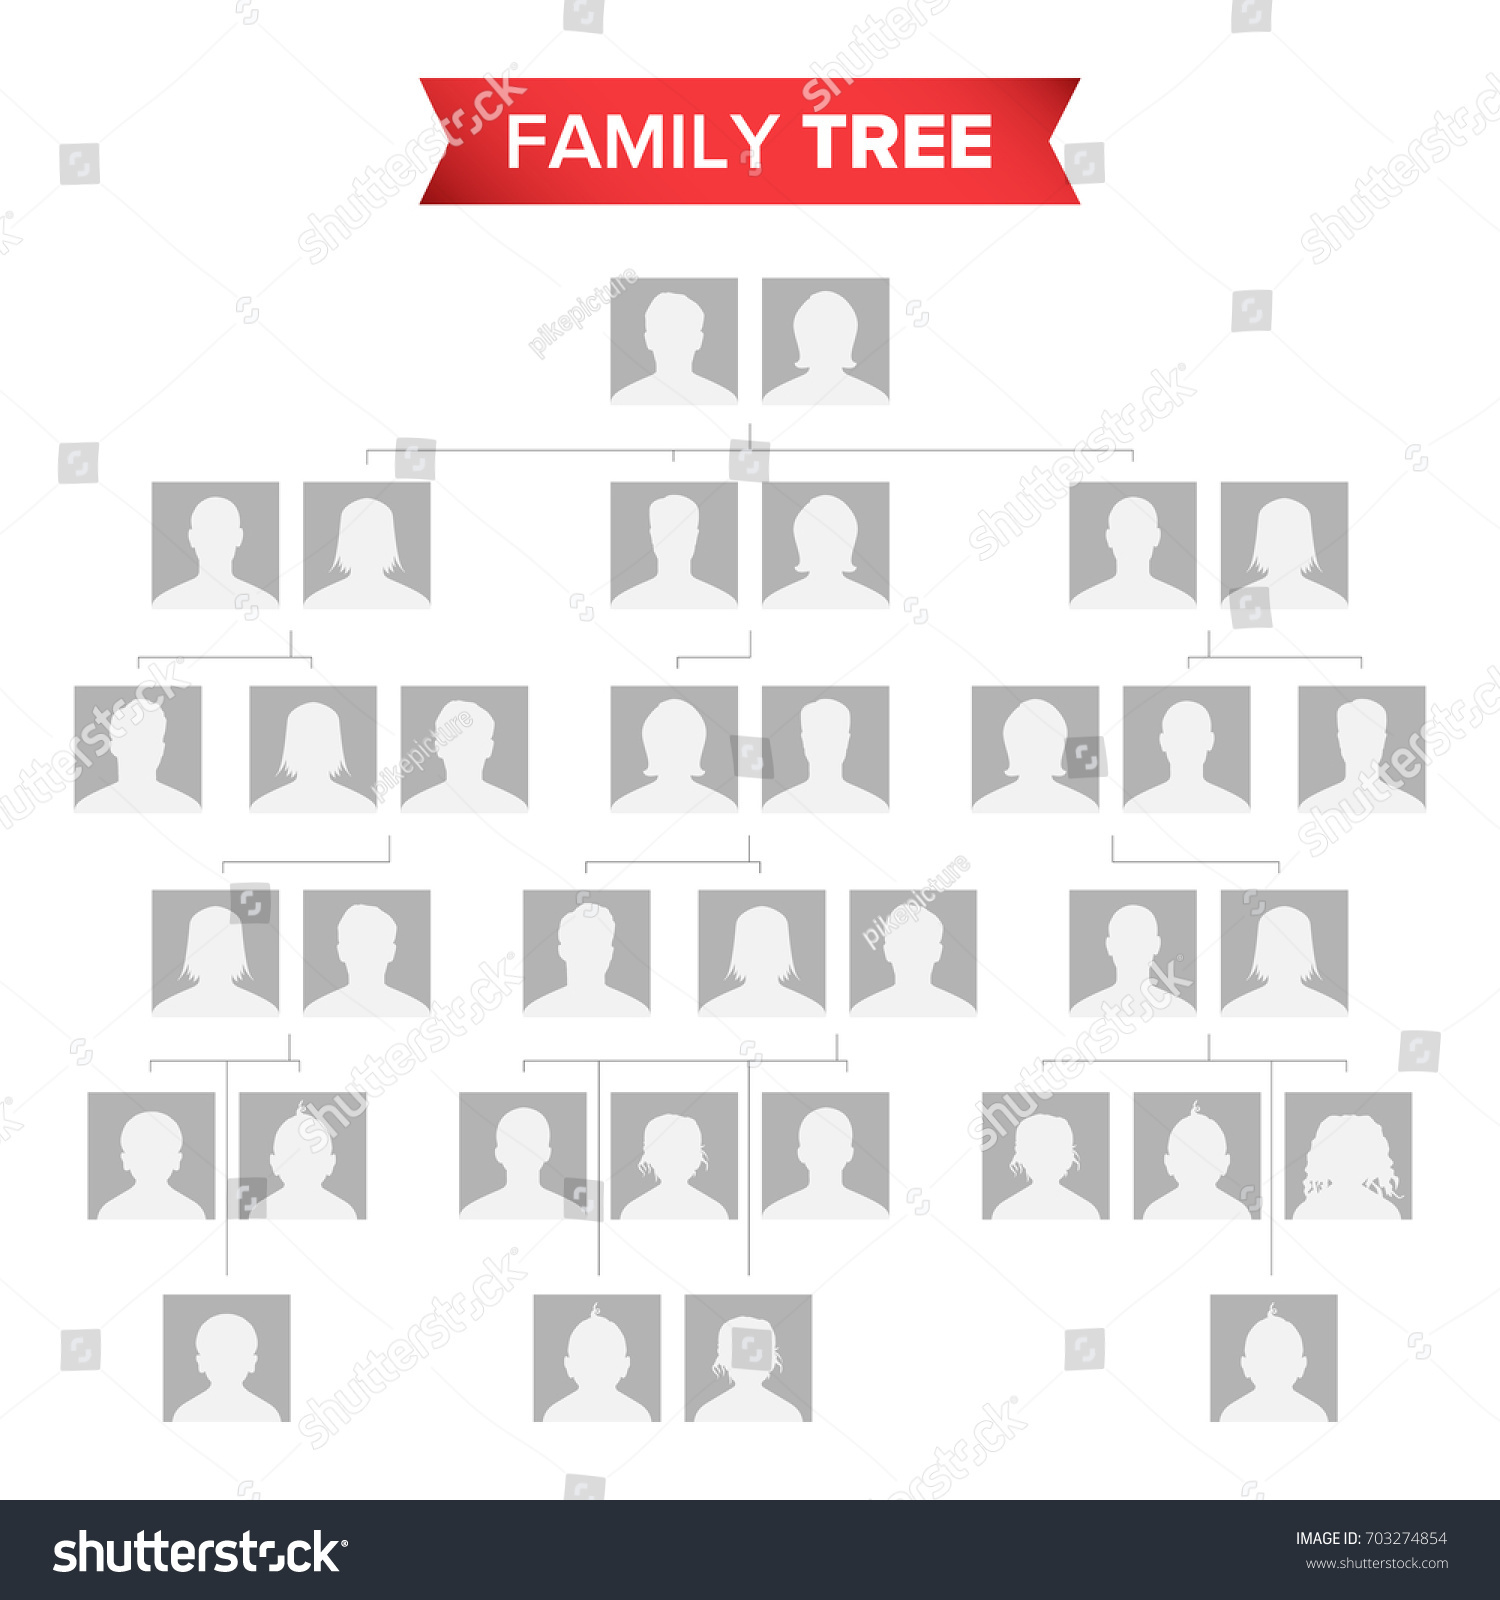 Genealogical Tree Template Vector Family History Stock Vector